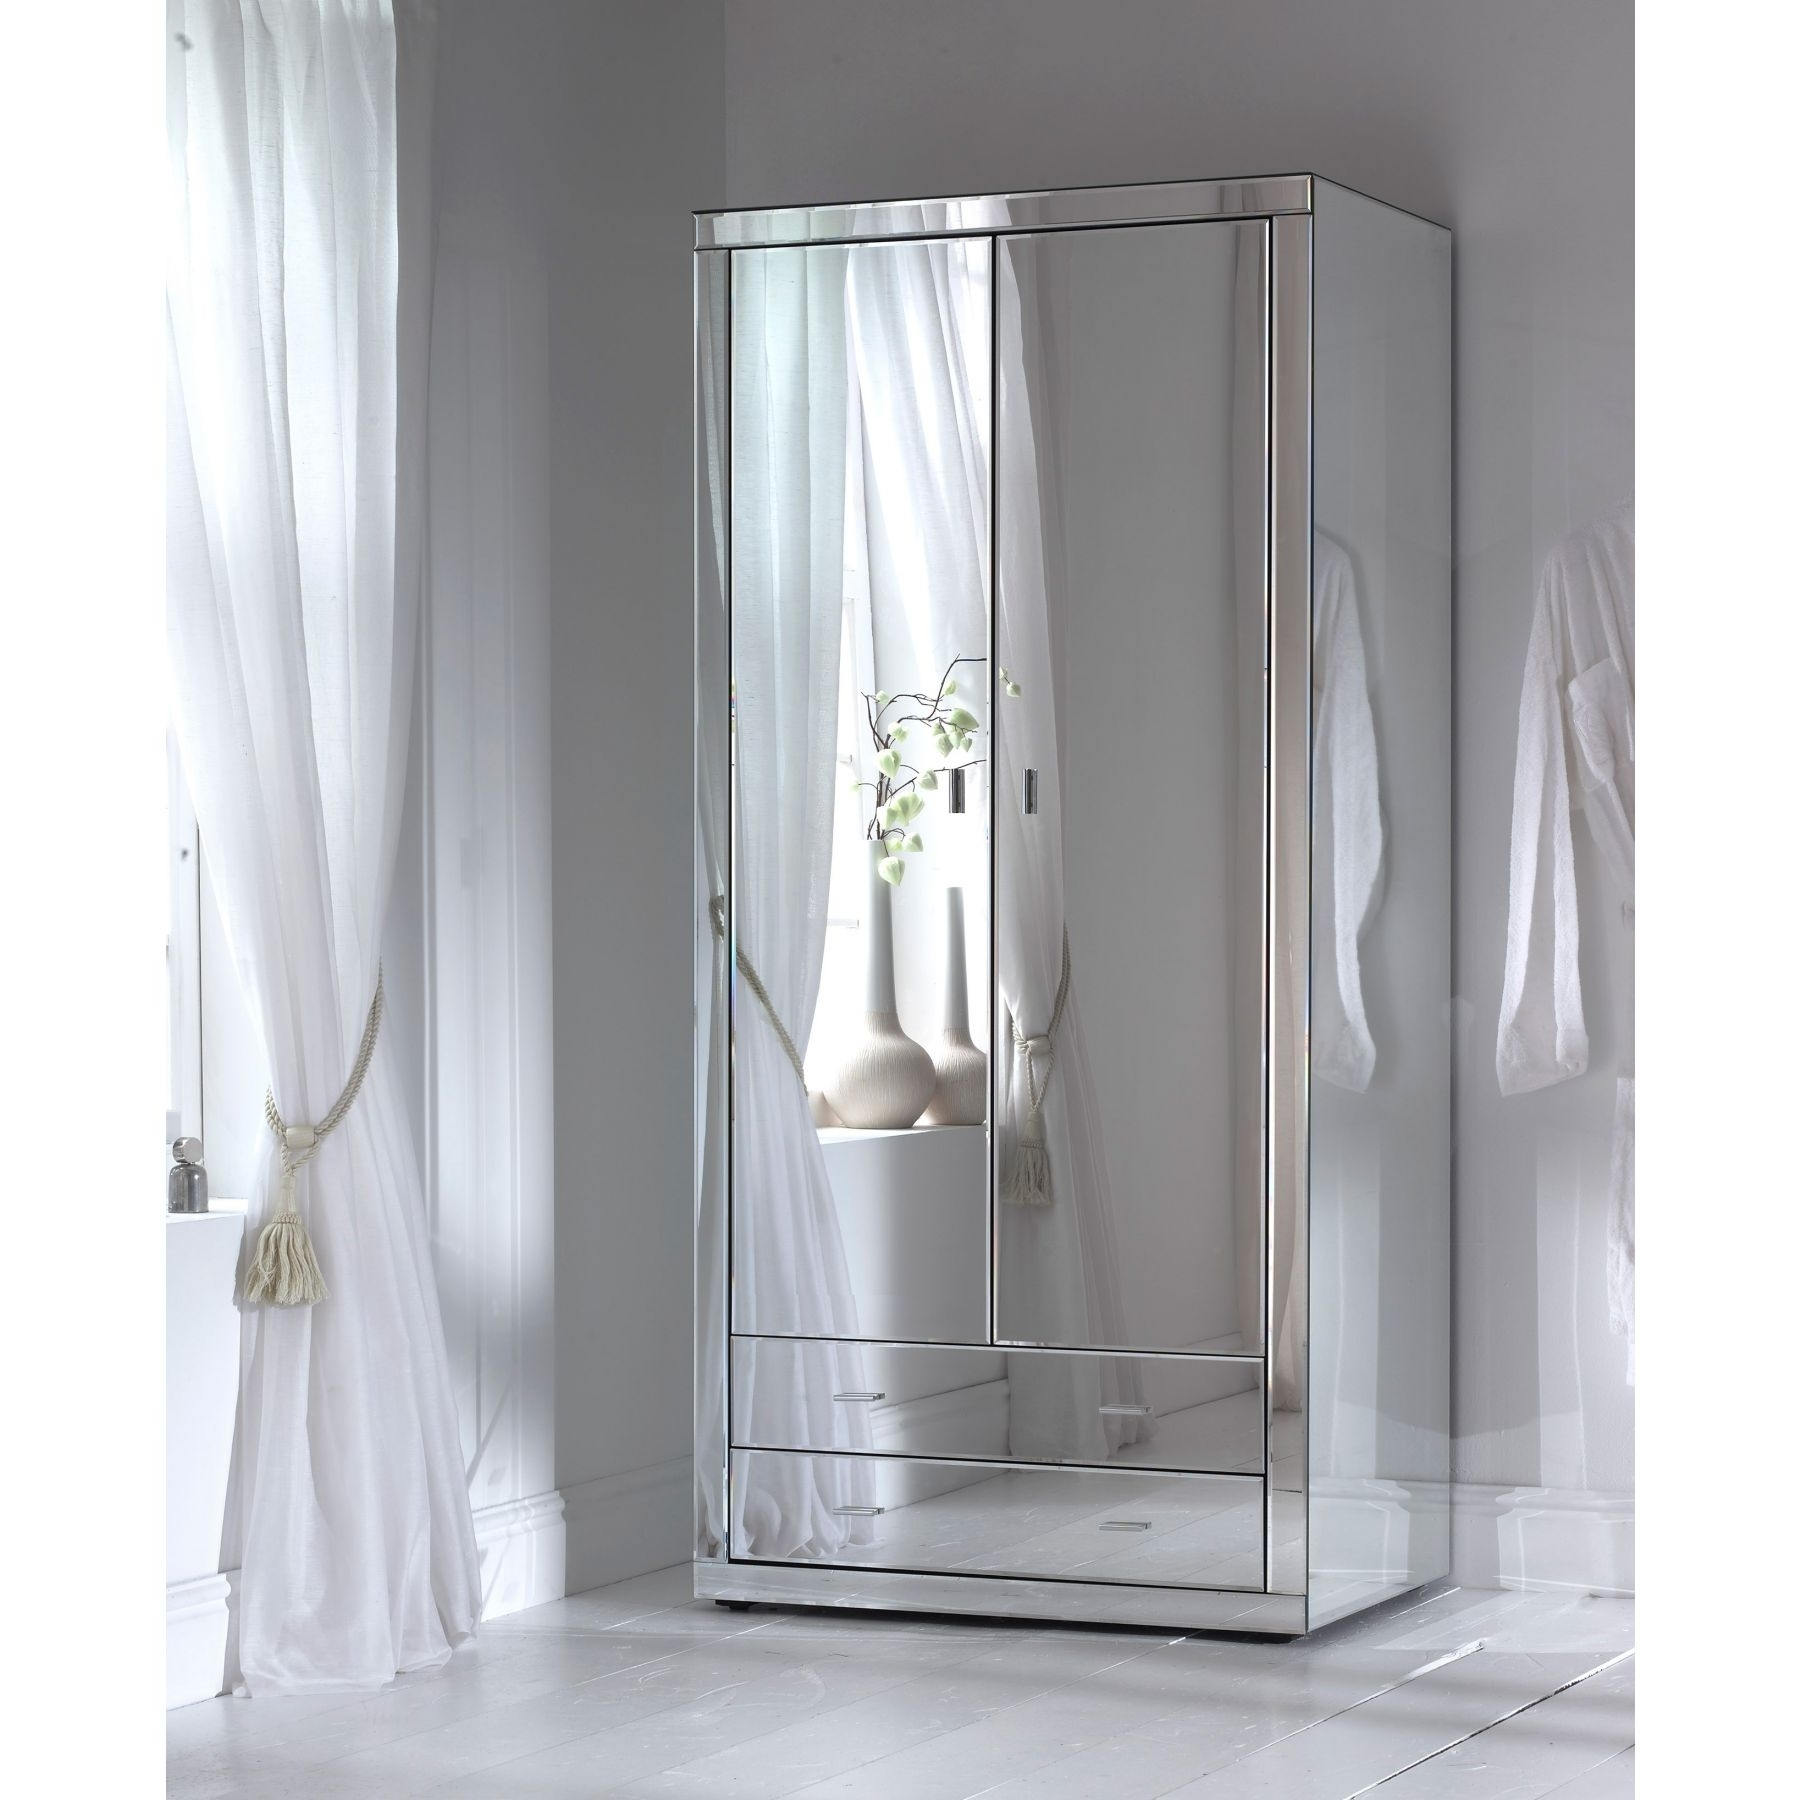 2017 Bergen Wardrobe White With Mirror Doors Ebay Ikea 3 Door You Will Within Cheap Wardrobes With Mirror (View 5 of 15)